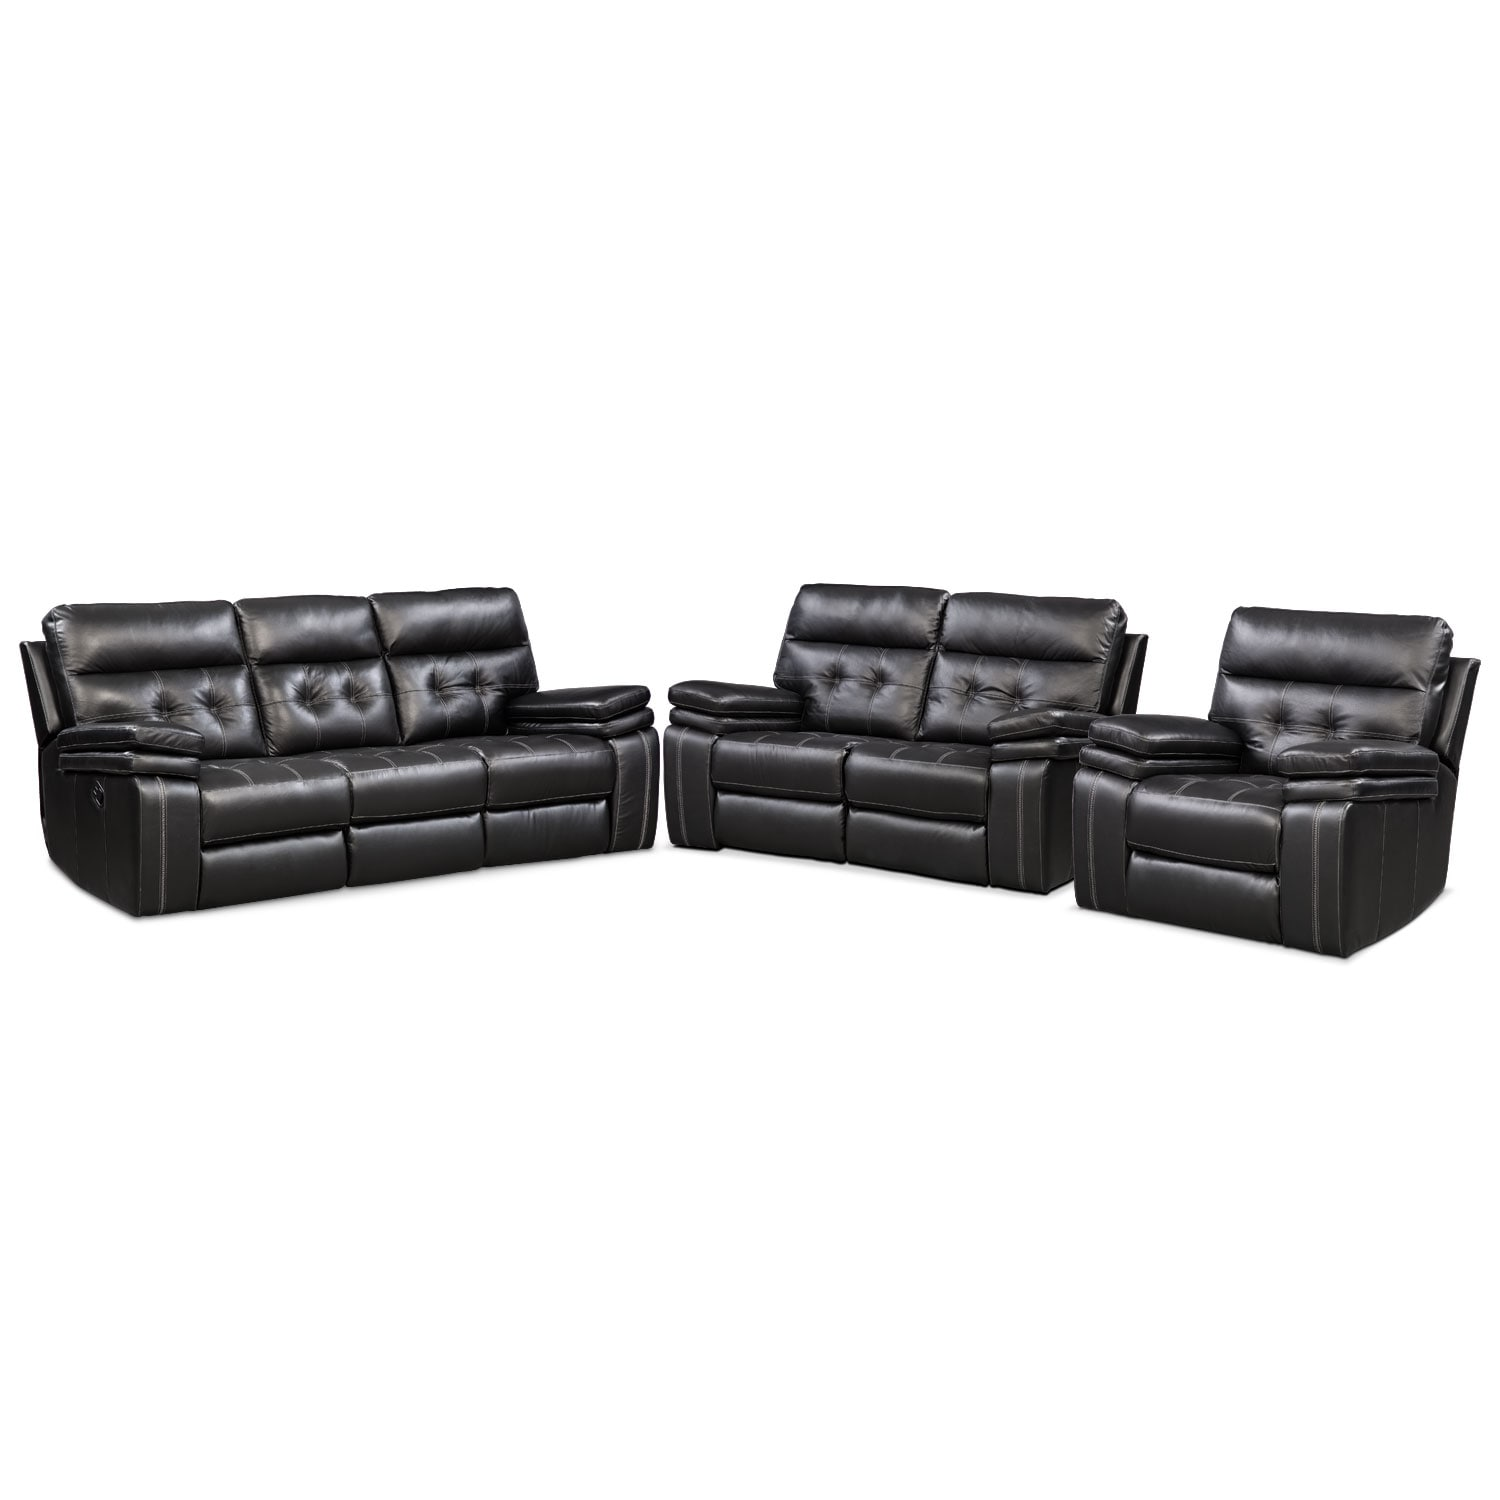 Living Room Furniture - Brisco Manual Reclining Sofa, Reclining Loveseat and Recliner Set - Black